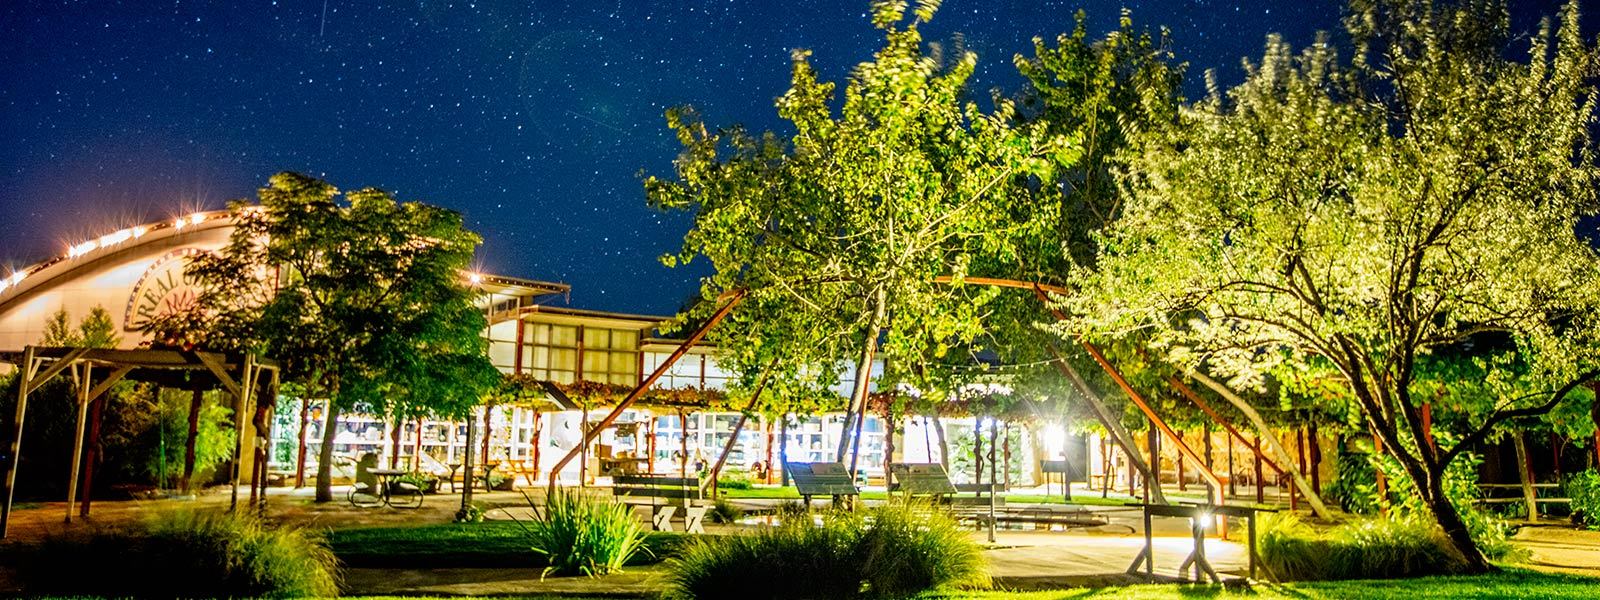 Ecotopia central oasis at night